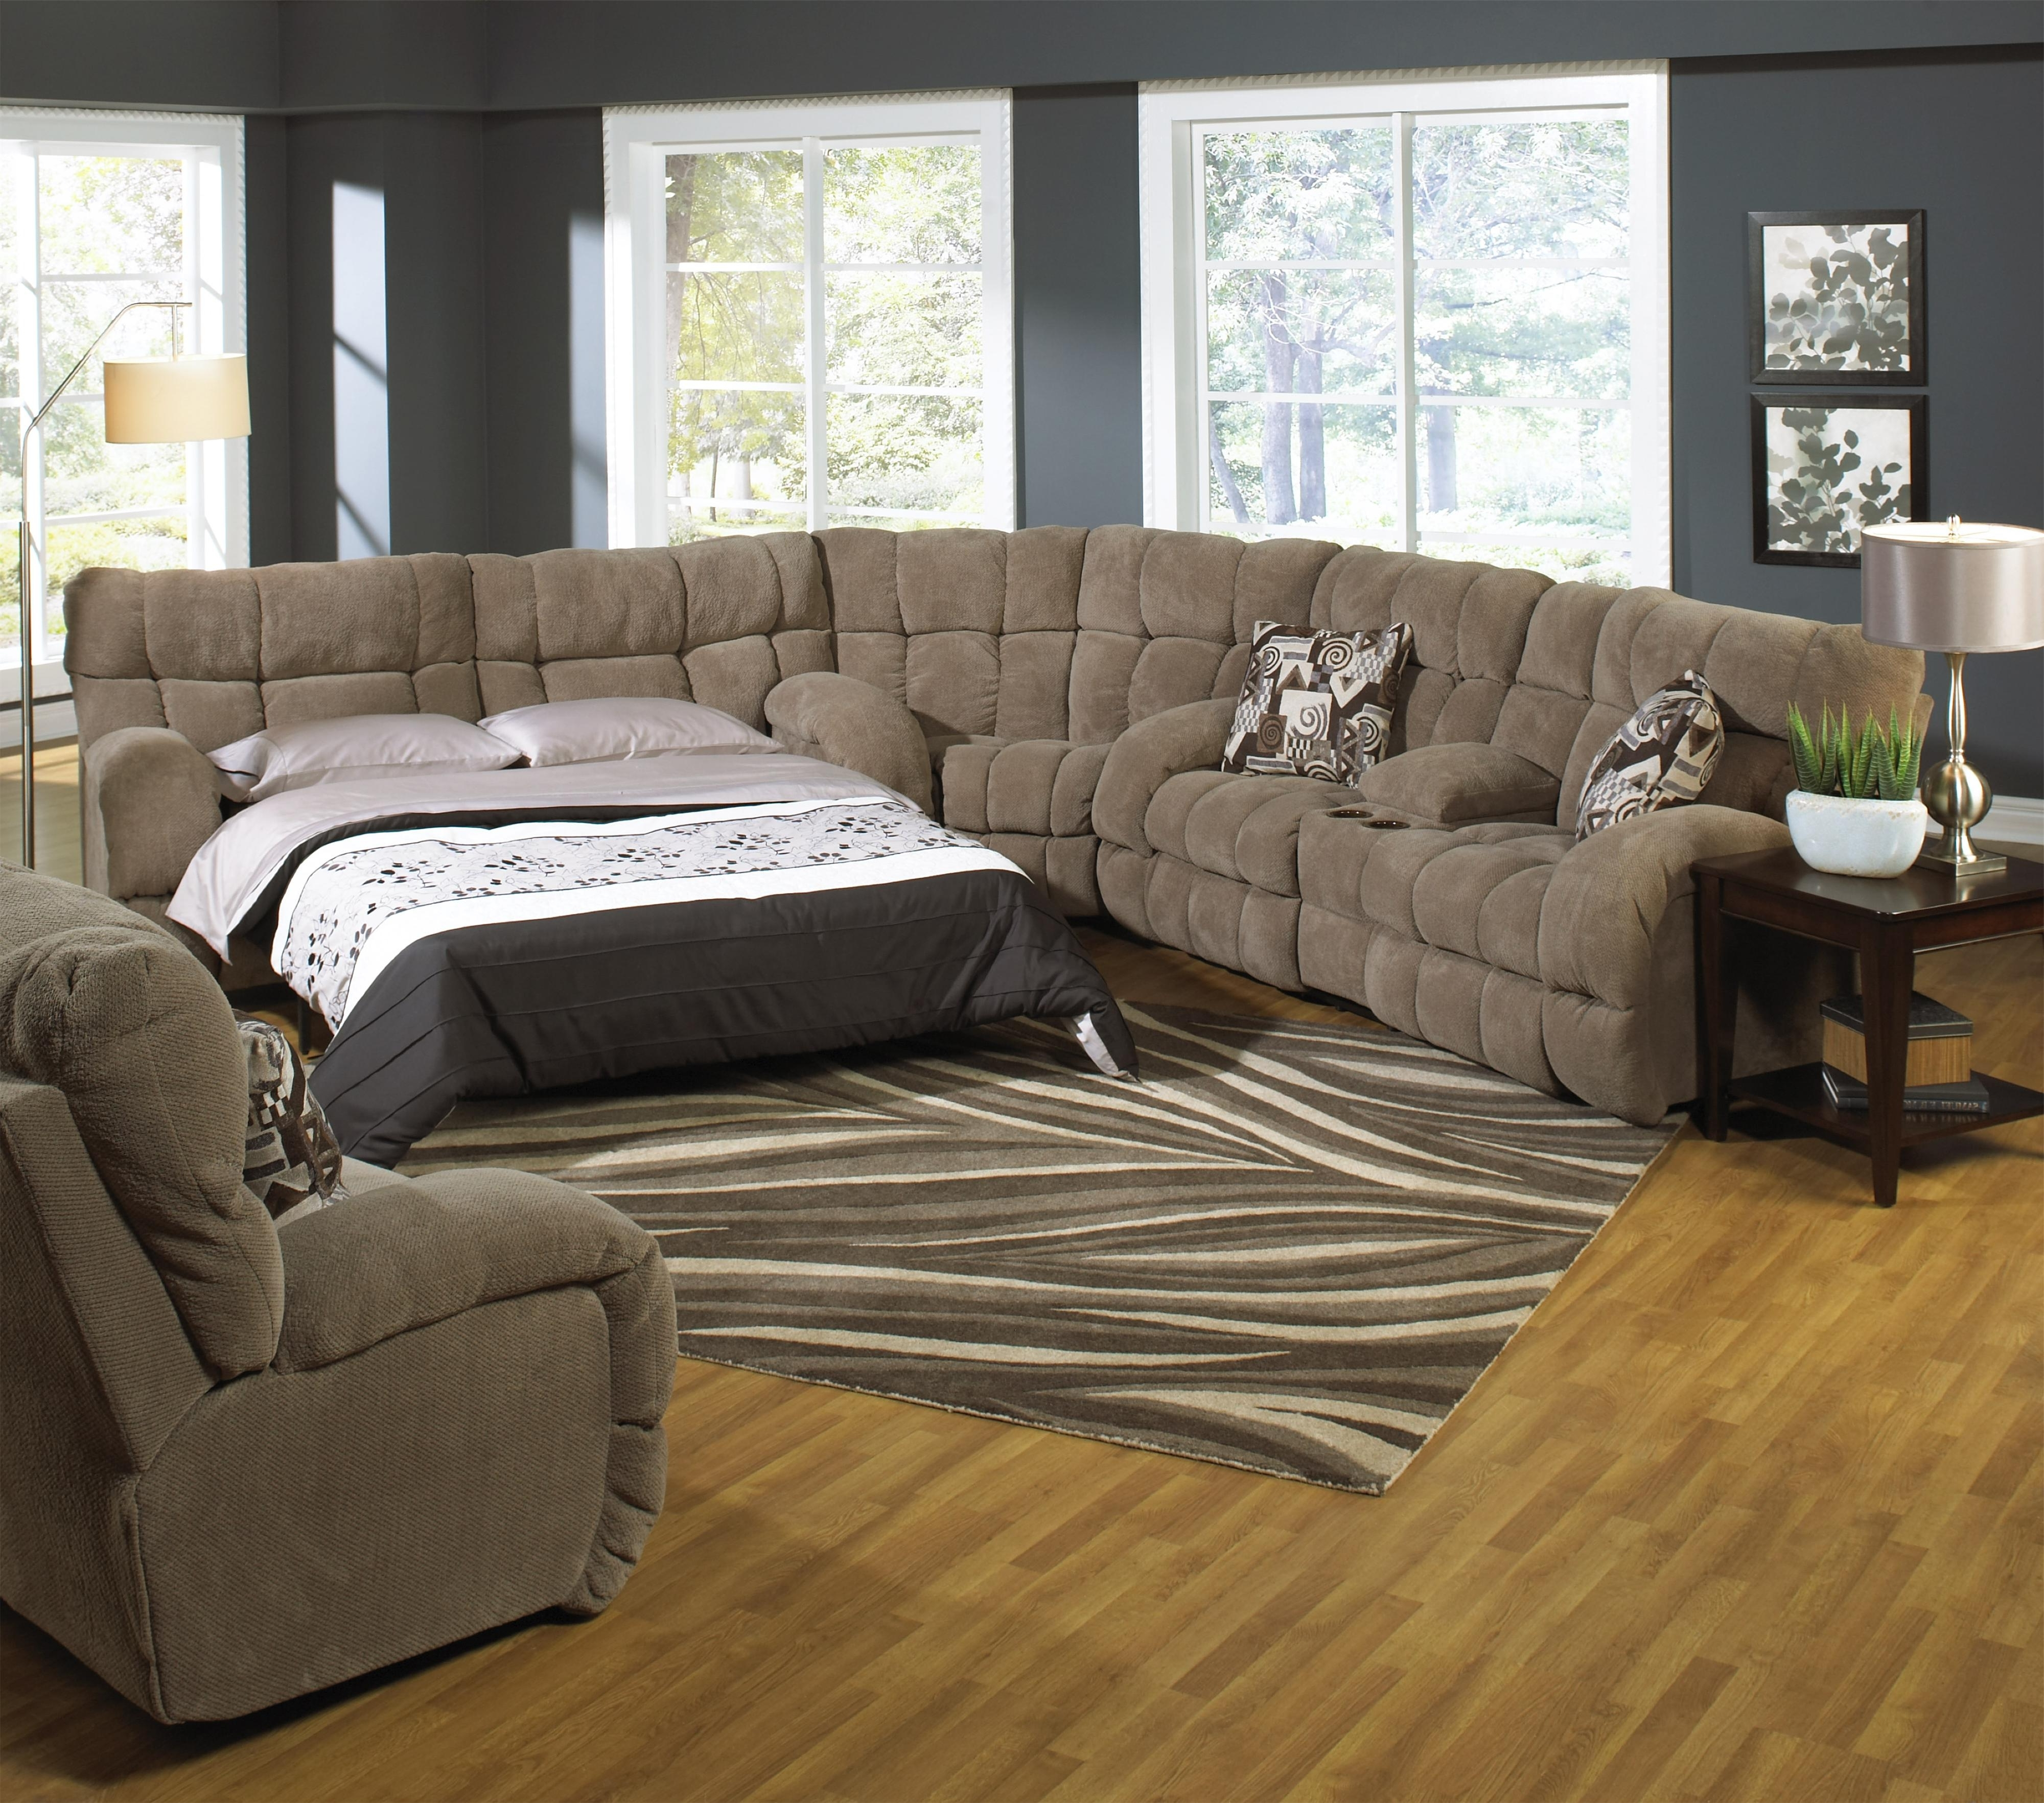 Preferred Sofas With Chaise And Recliner Within Reclining Sectional Sofa With Sofa Sleepercatnapper (View 9 of 15)